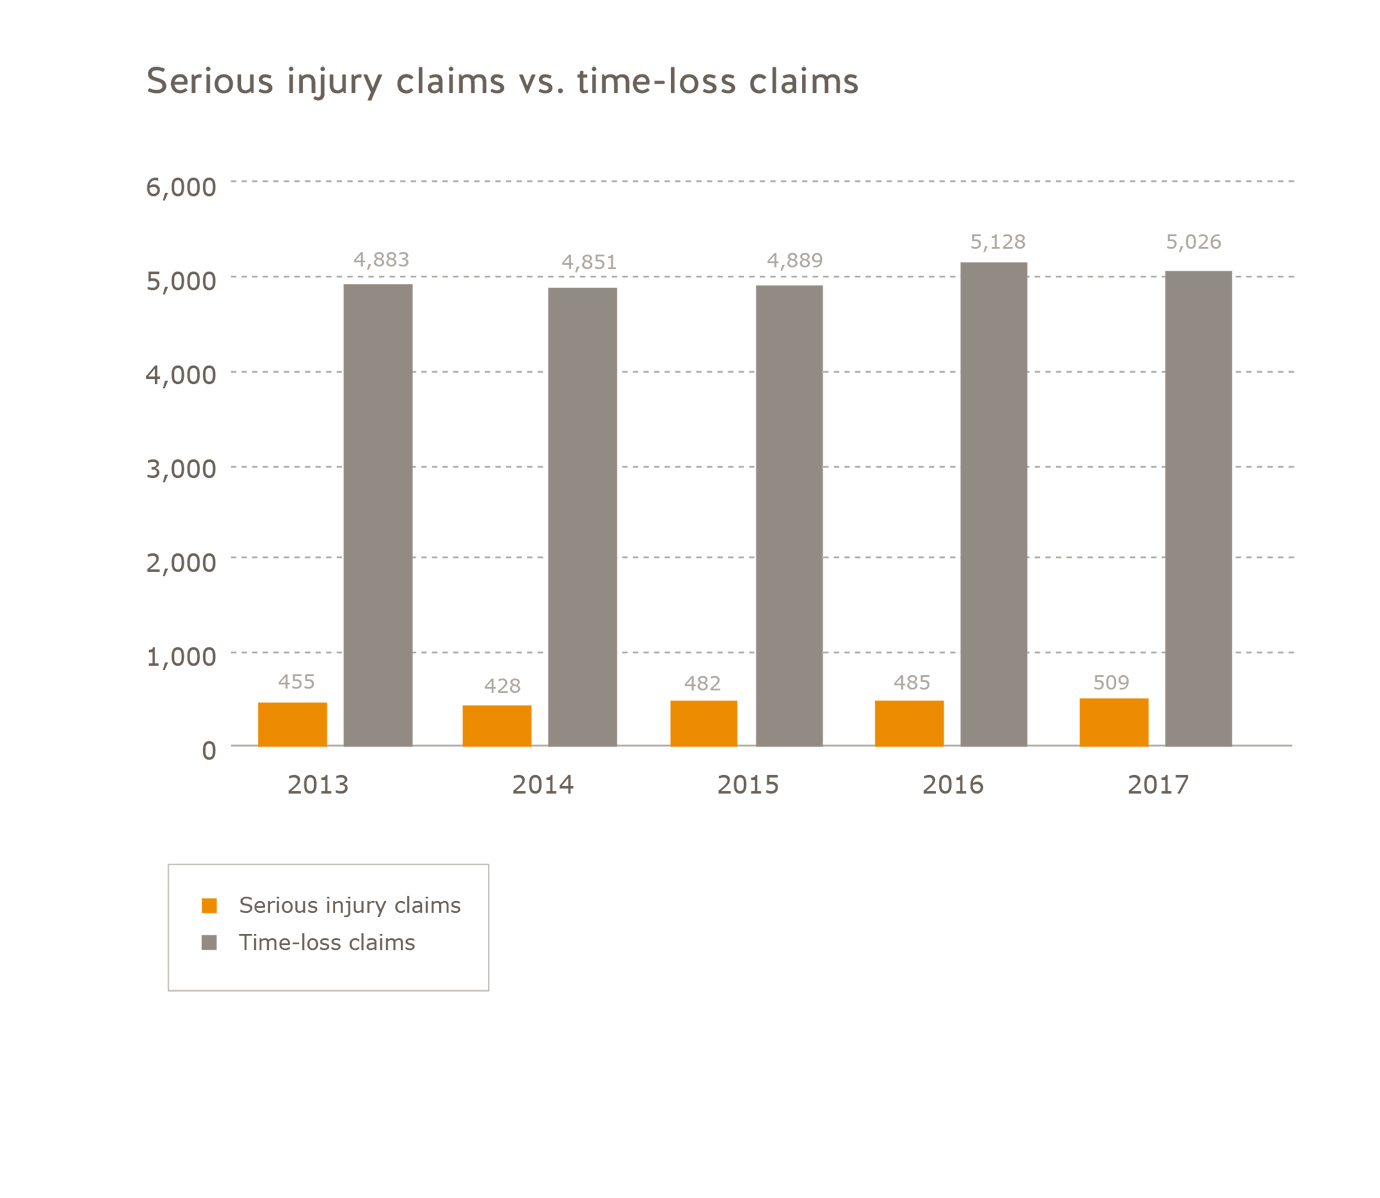 Number of serious injury claims vs. number of time-loss claims retail subsector 2013 to 2017. Number of serious injury claims: 2013 = 455, 2014 = 428, 2015 = 482, 2016 = 485, 2017 = 509. Number of time-loss claims: 2013 = 4,883, 2014 = 4,851, 2015 = 4,889, 2016 = 5,128, 2017 = 5,026.